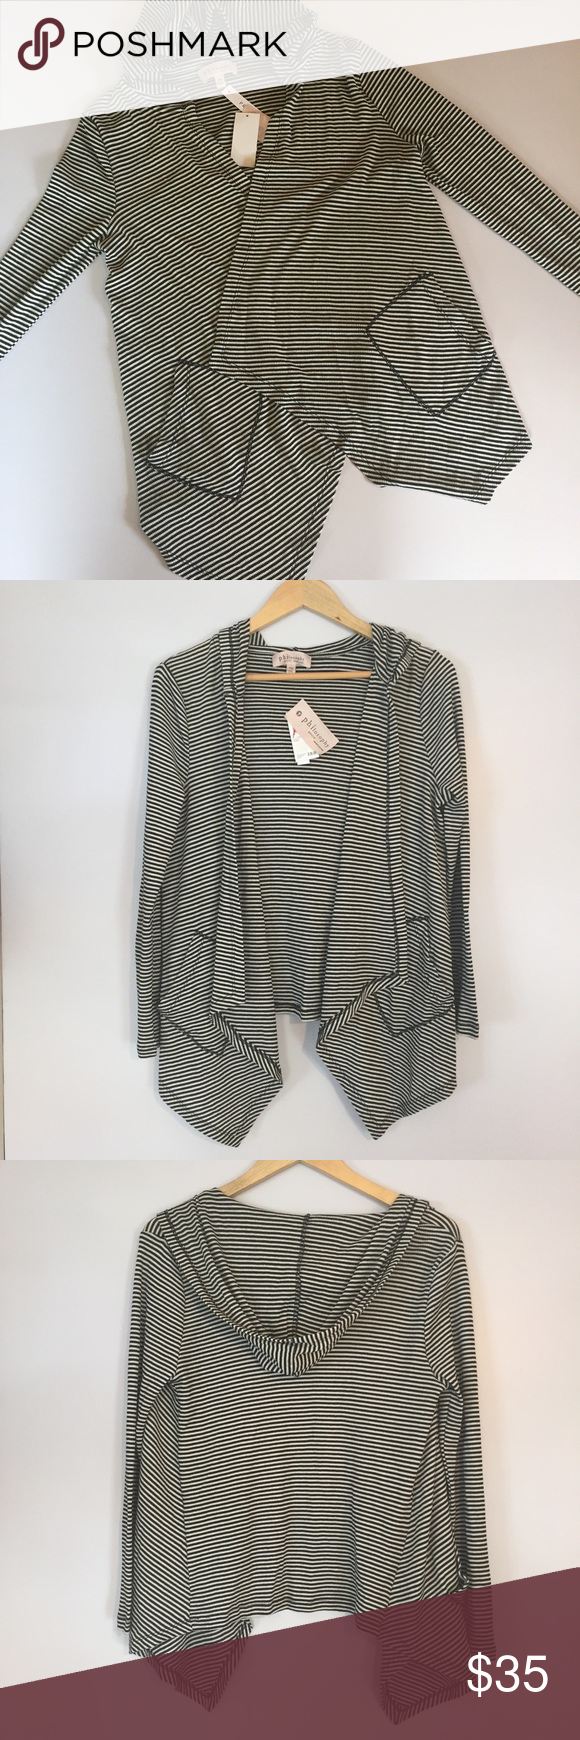 NWT philosophy petite hooded cardigan NWT | Pm, Sweater cardigan ...